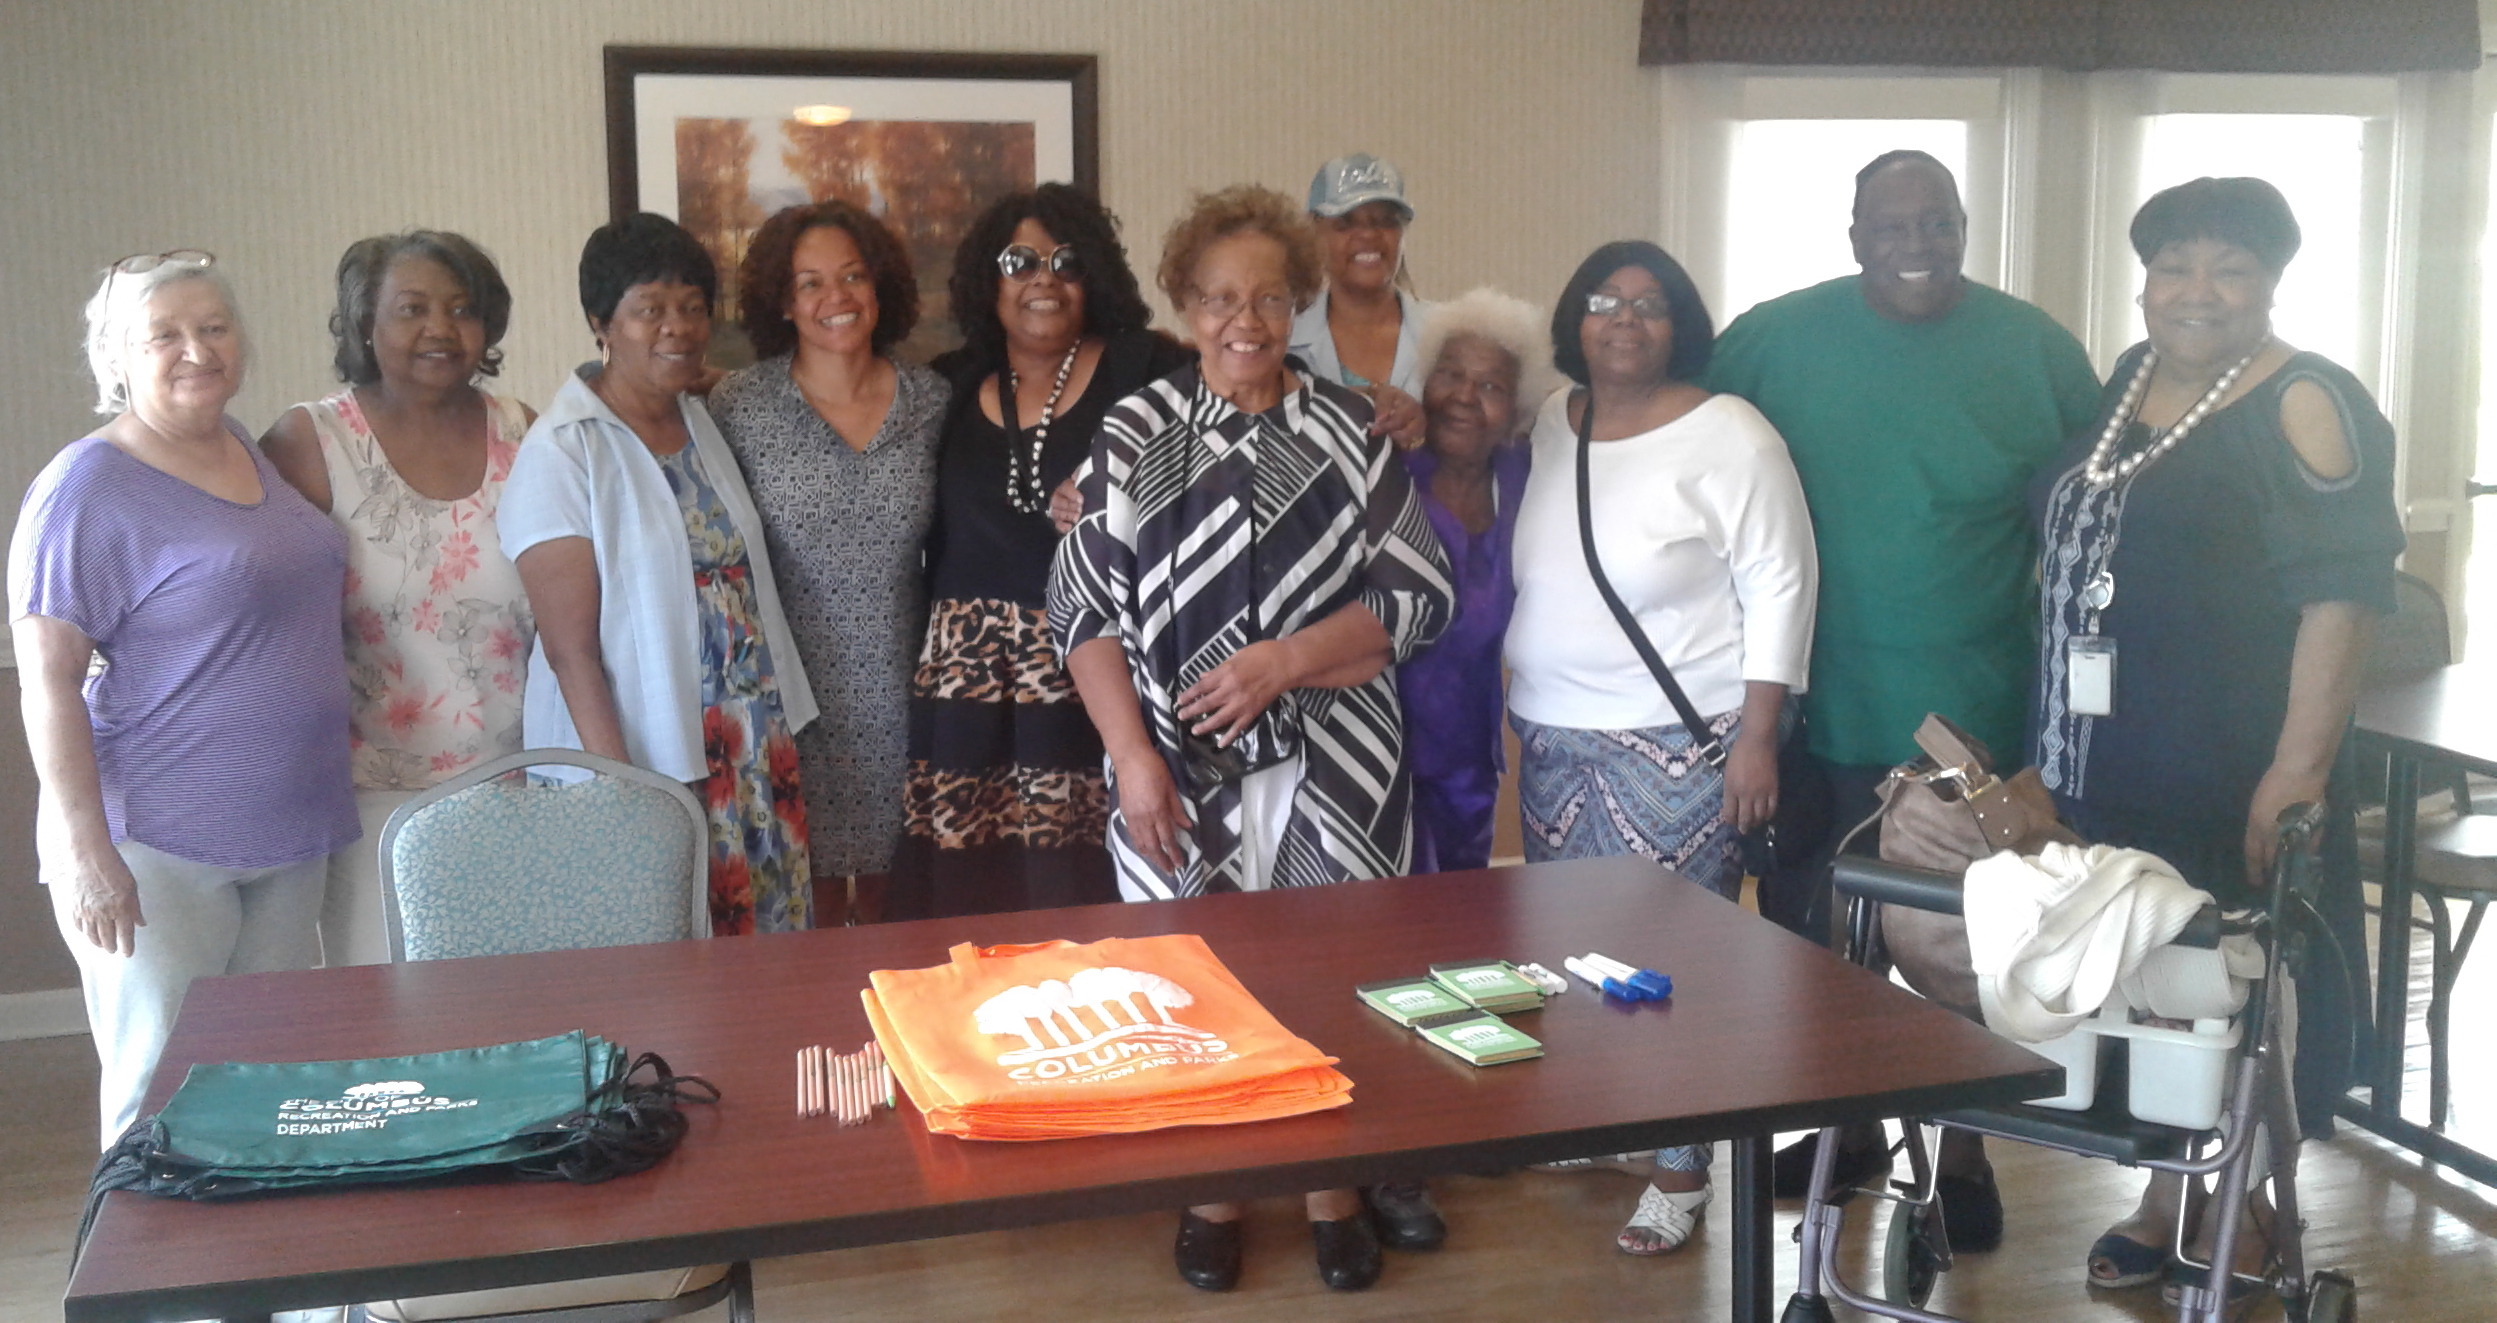 Columbus Council Member Jaiza Page, fourth from left. Homeport Senior VP Maude Hill is on far right.